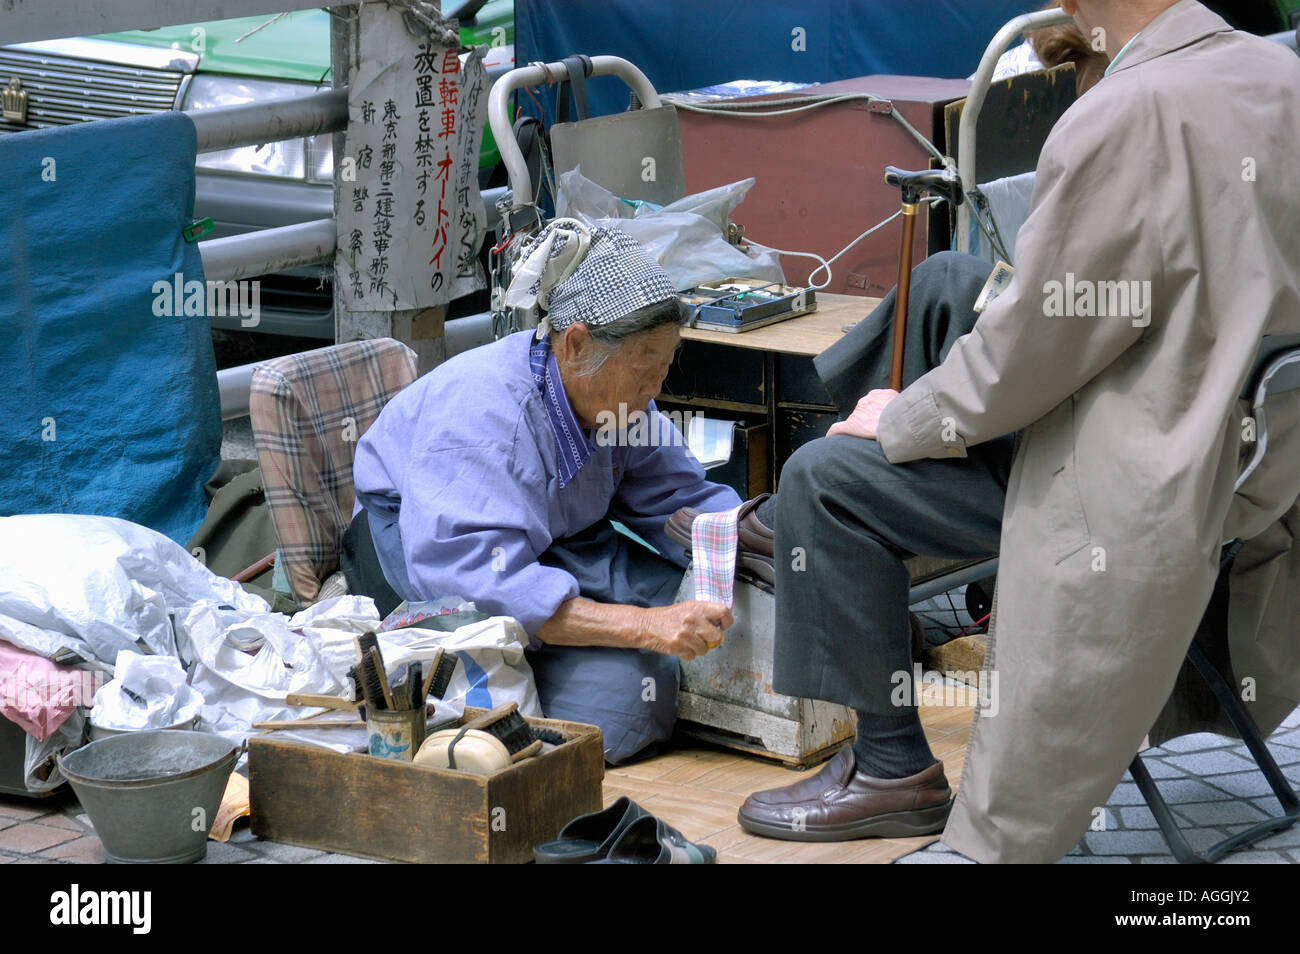 old woman polishing shoes, Tokyo, Japan - Stock Image